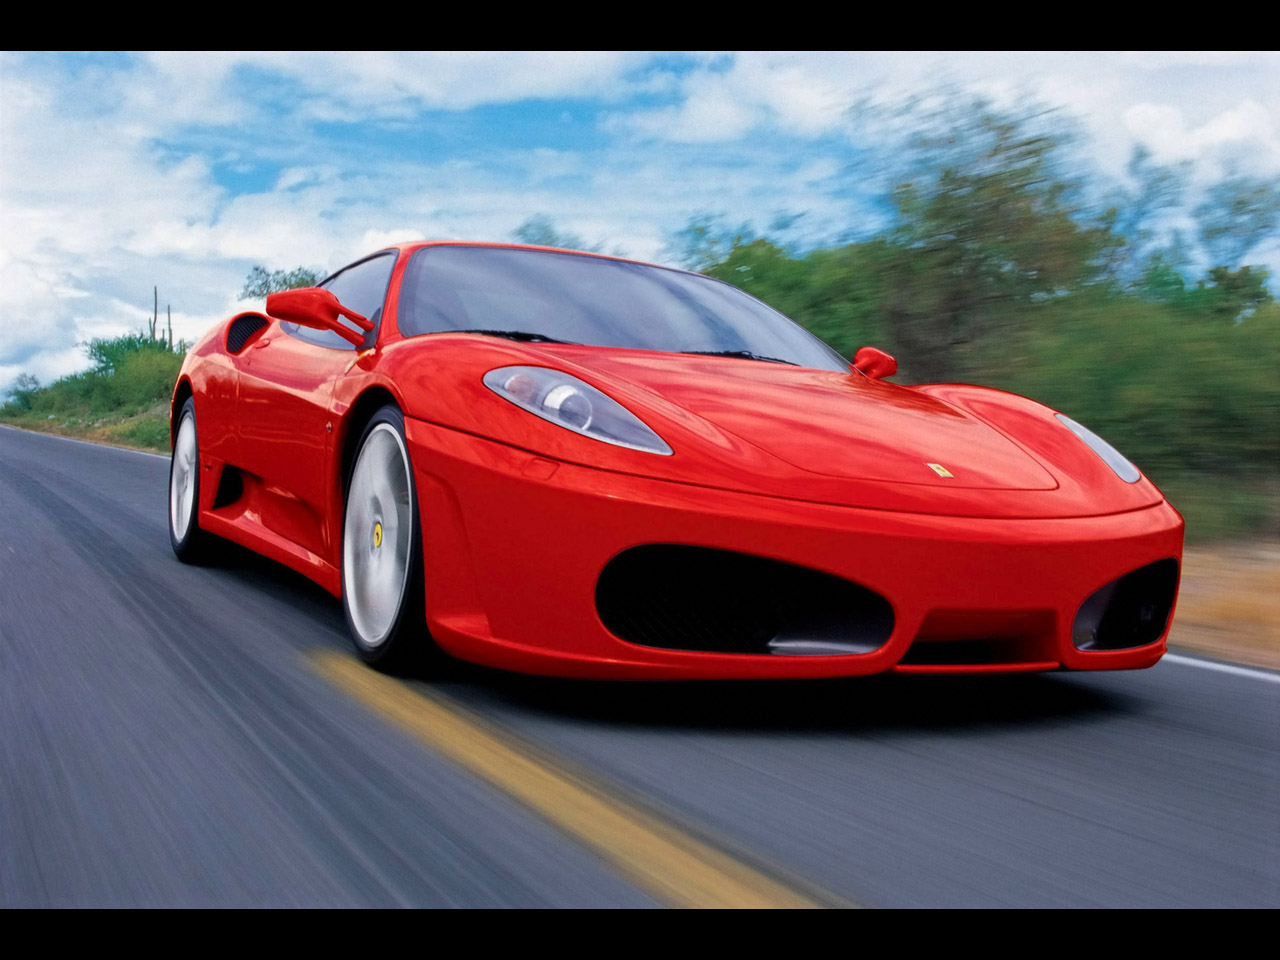 super car images Cars Wallpapers And Pictures car imagescar pics 1280x960